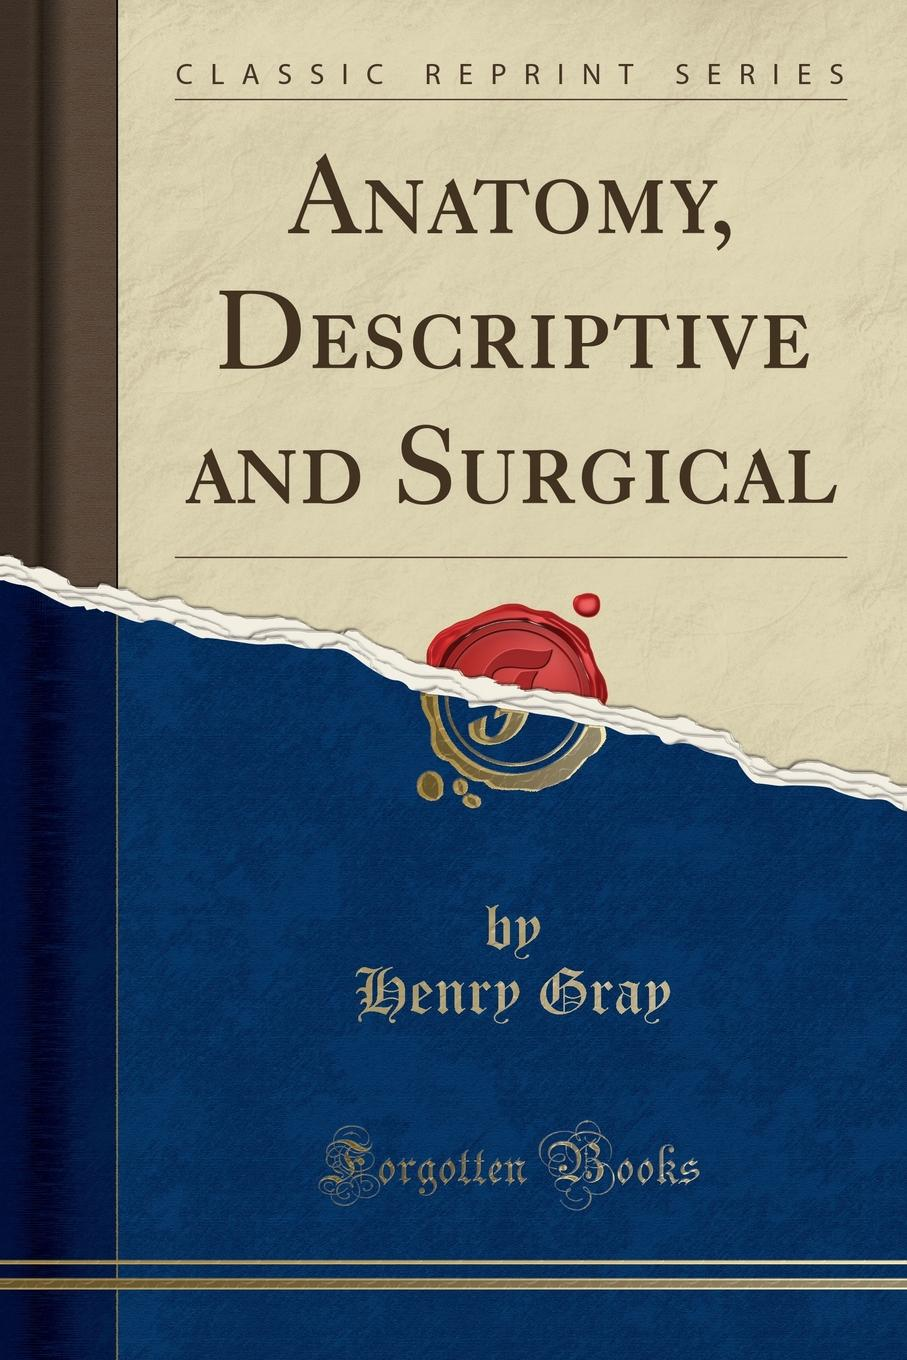 Anatomy, Descriptive and Surgical (Classic Reprint) - Walmart.com